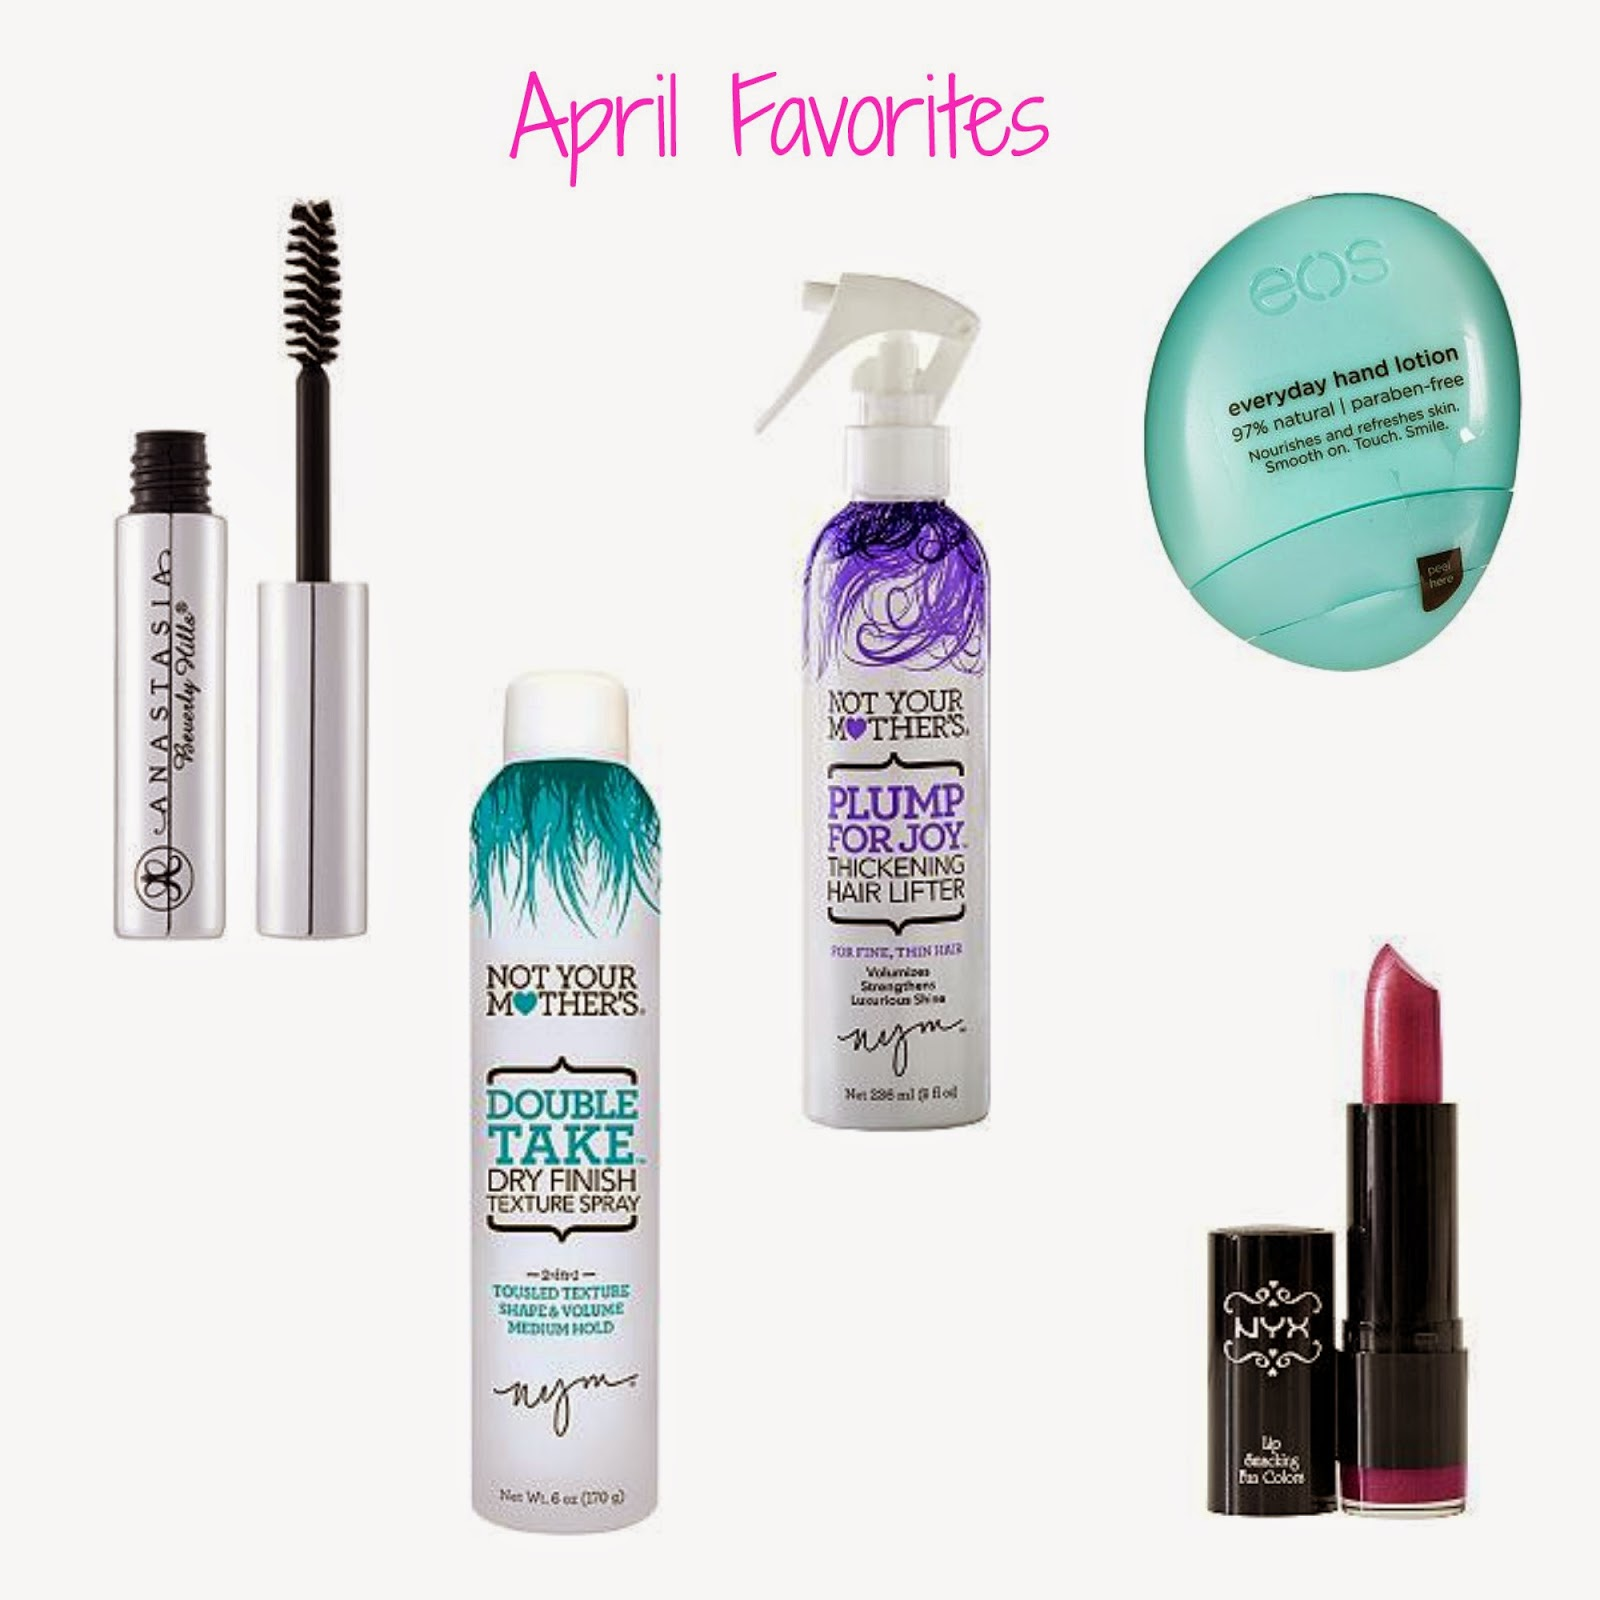 Monthly Favorites: April Edition